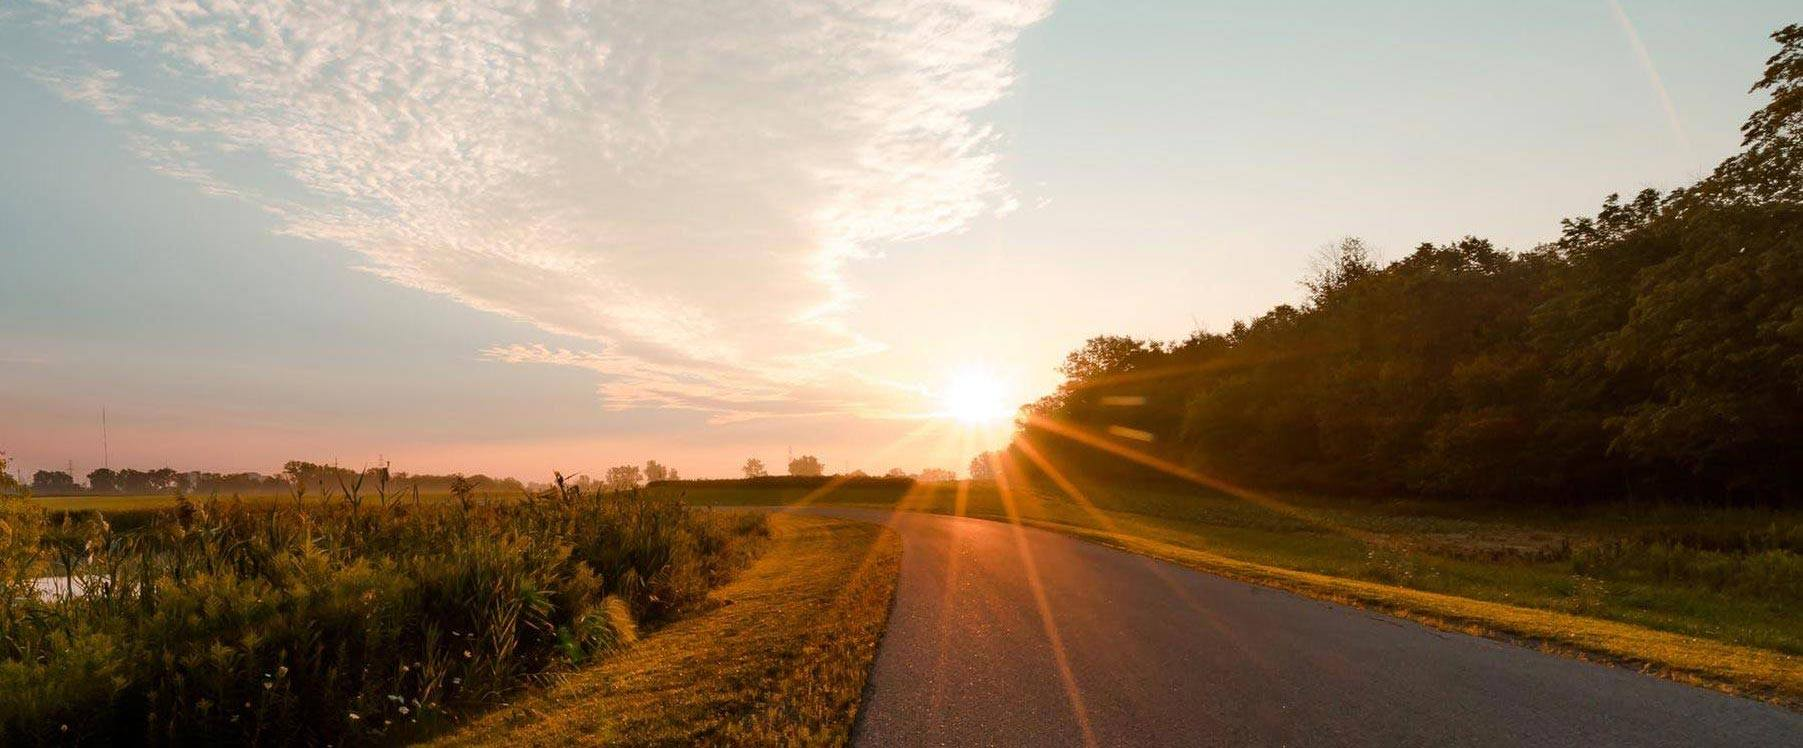 rural road with sun setting on the horizon